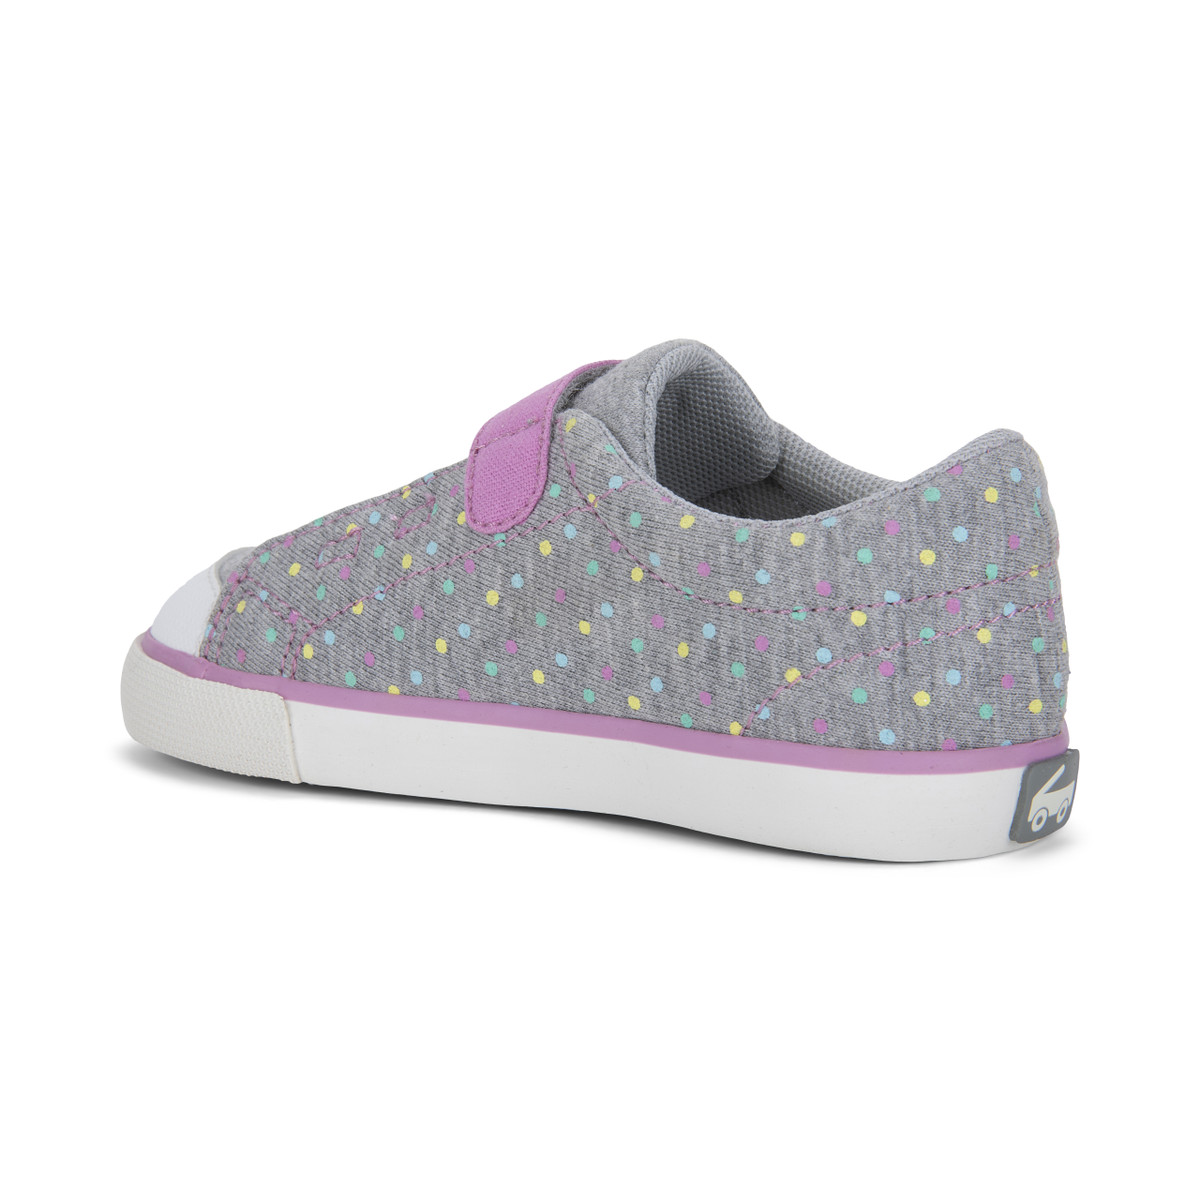 Back Left Side view of the Monterey Rainbow Dots shoe